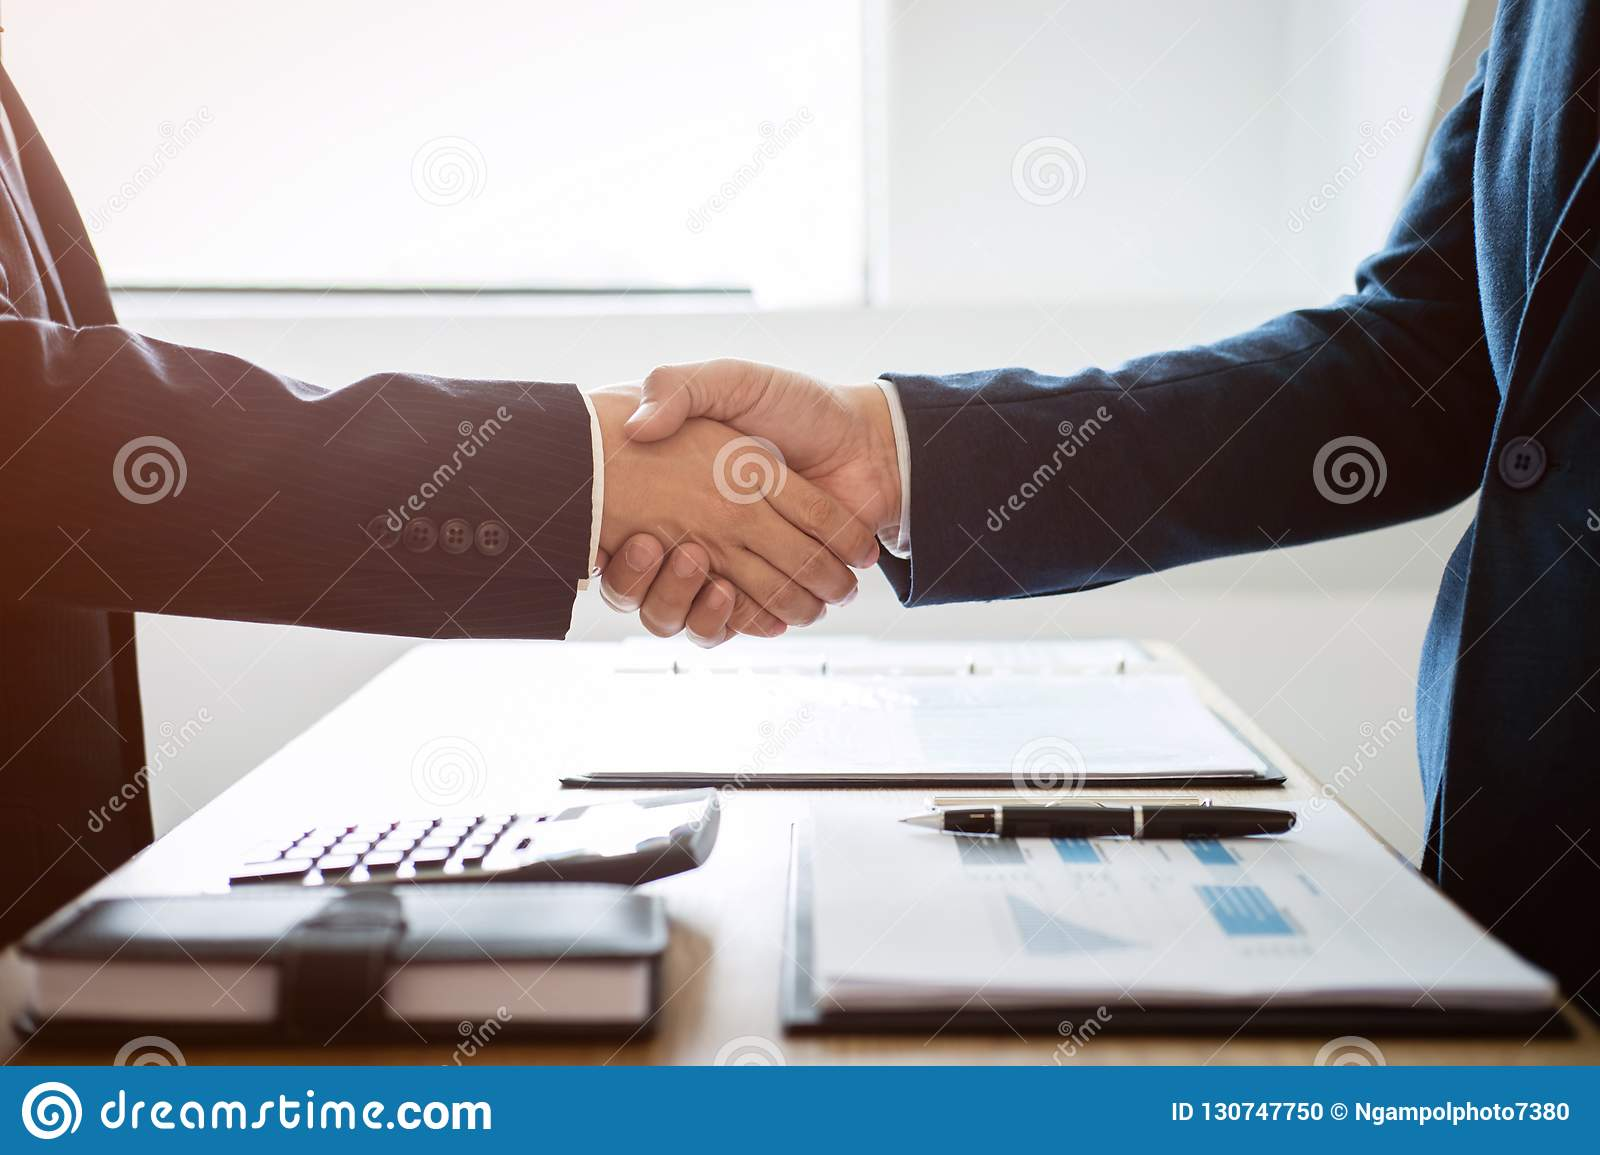 Finishing up a meeting, handshake of two happy business people a